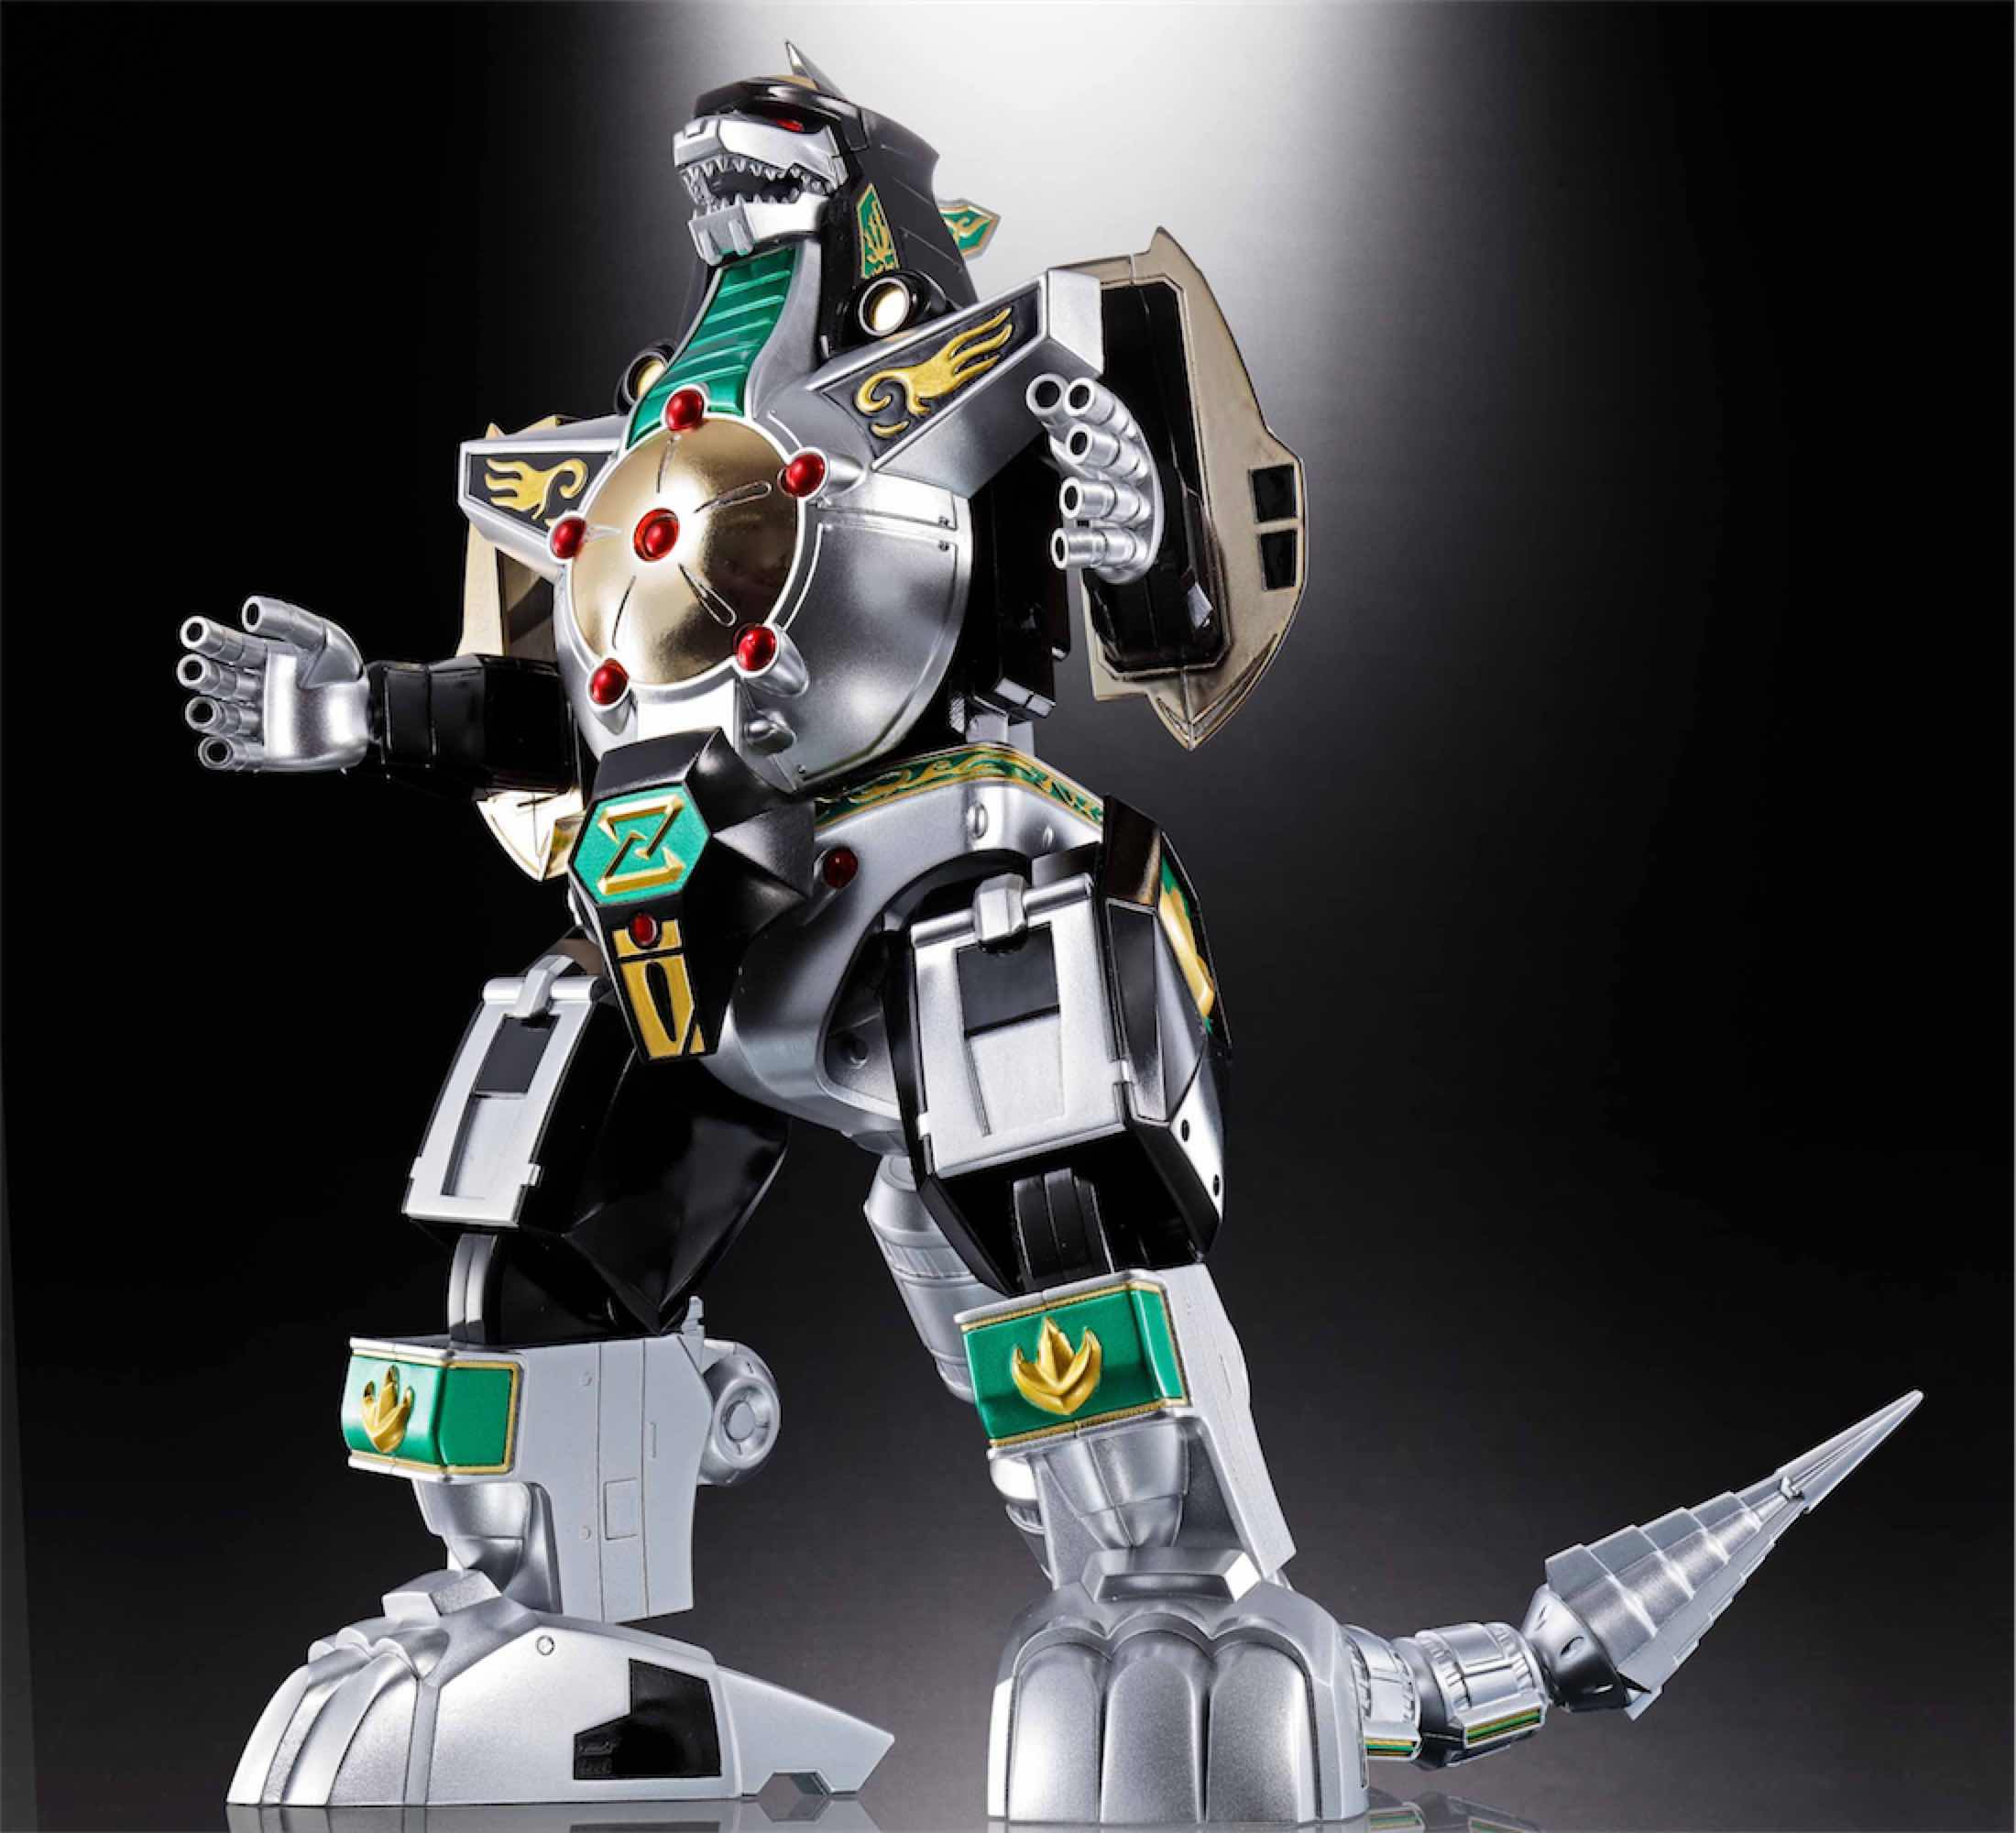 GX-78 DRAGONZORD FIGURE 23 CM POWER RANGERS SOUL OF CHOGOKIN